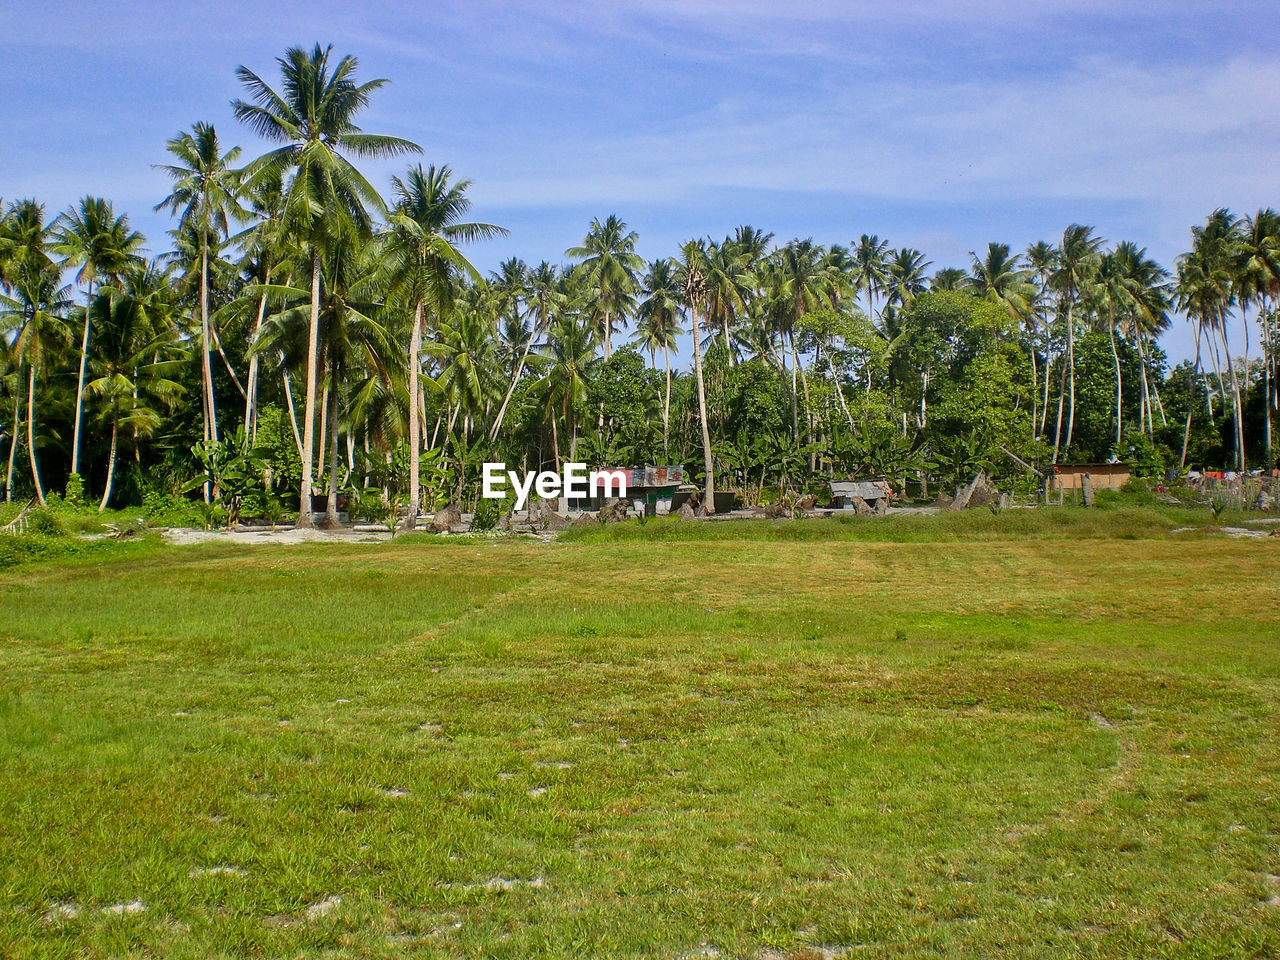 plant, tree, sky, palm tree, tropical climate, grass, land, nature, cloud - sky, green color, field, day, beauty in nature, landscape, architecture, no people, environment, growth, tranquil scene, scenics - nature, outdoors, coconut palm tree